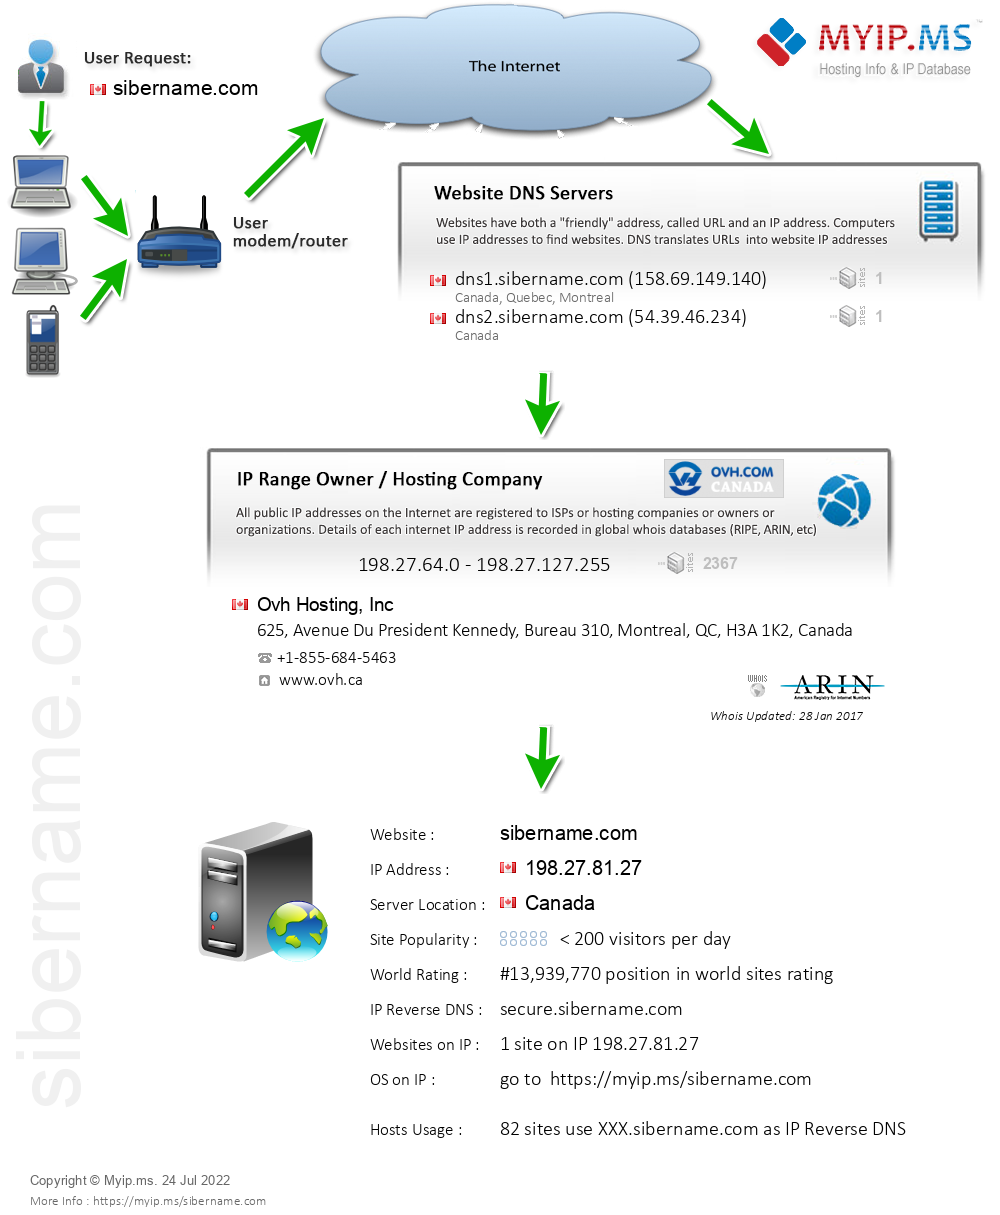 Sibername.com - Website Hosting Visual IP Diagram